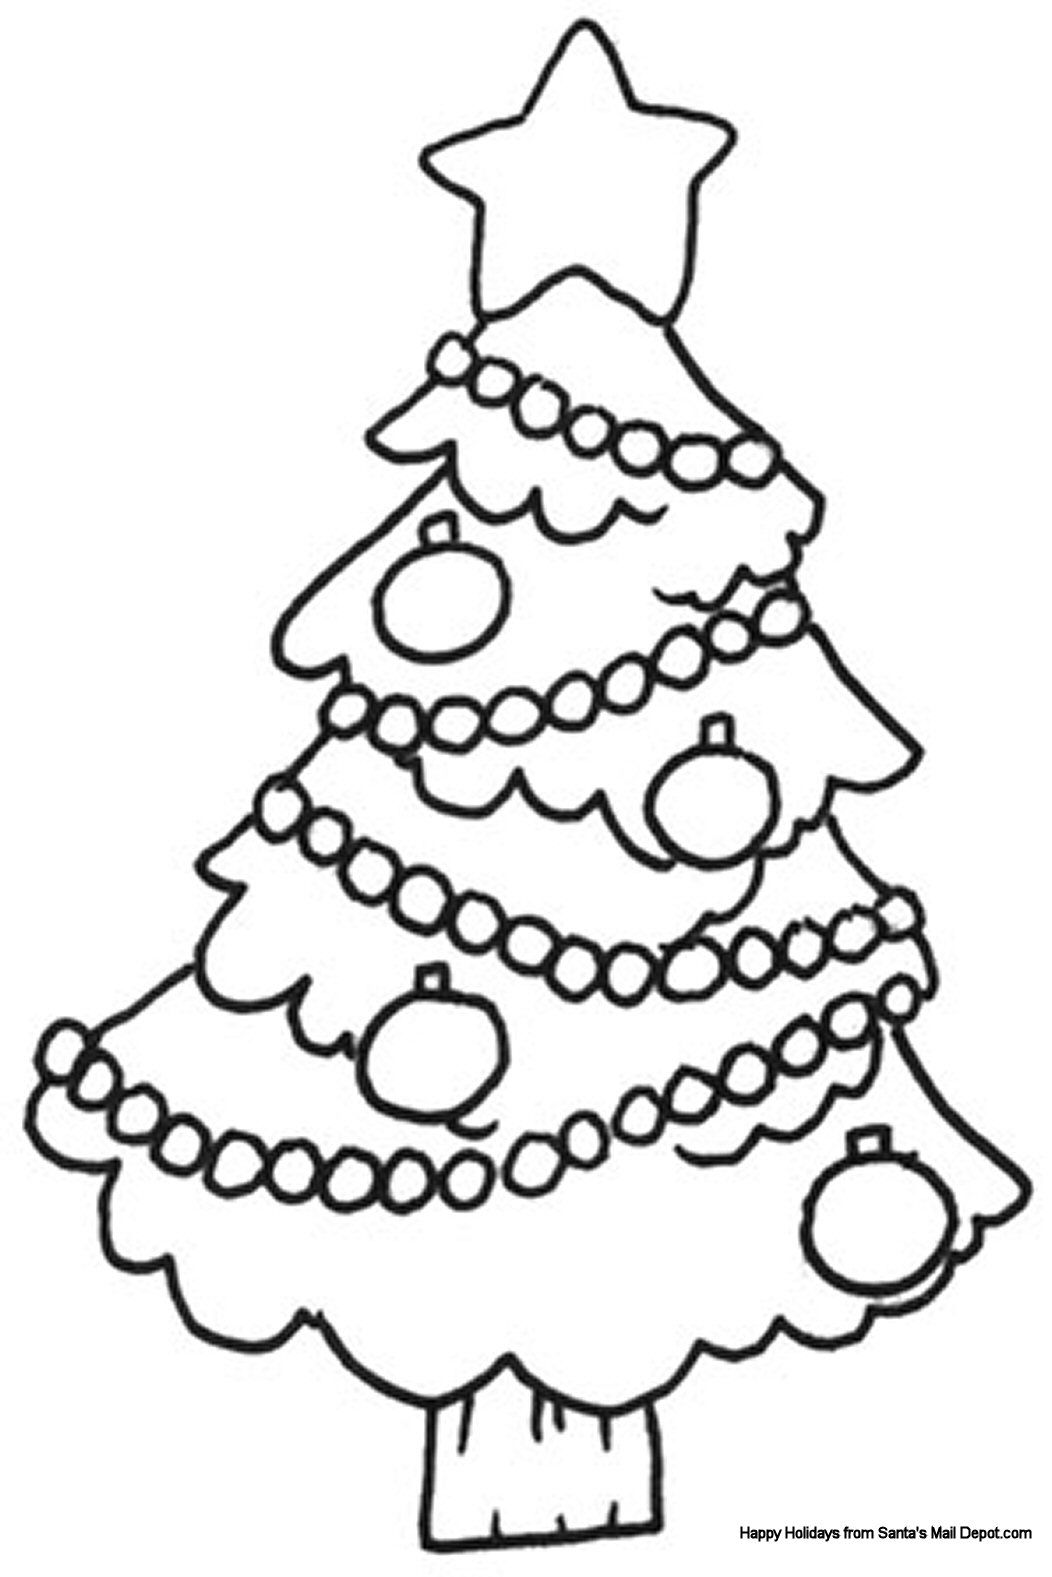 Uncategorized Christmas Color Pages Free christmas colouring sheet kids pinterest coloring free online printable pages sheets for get the latest im